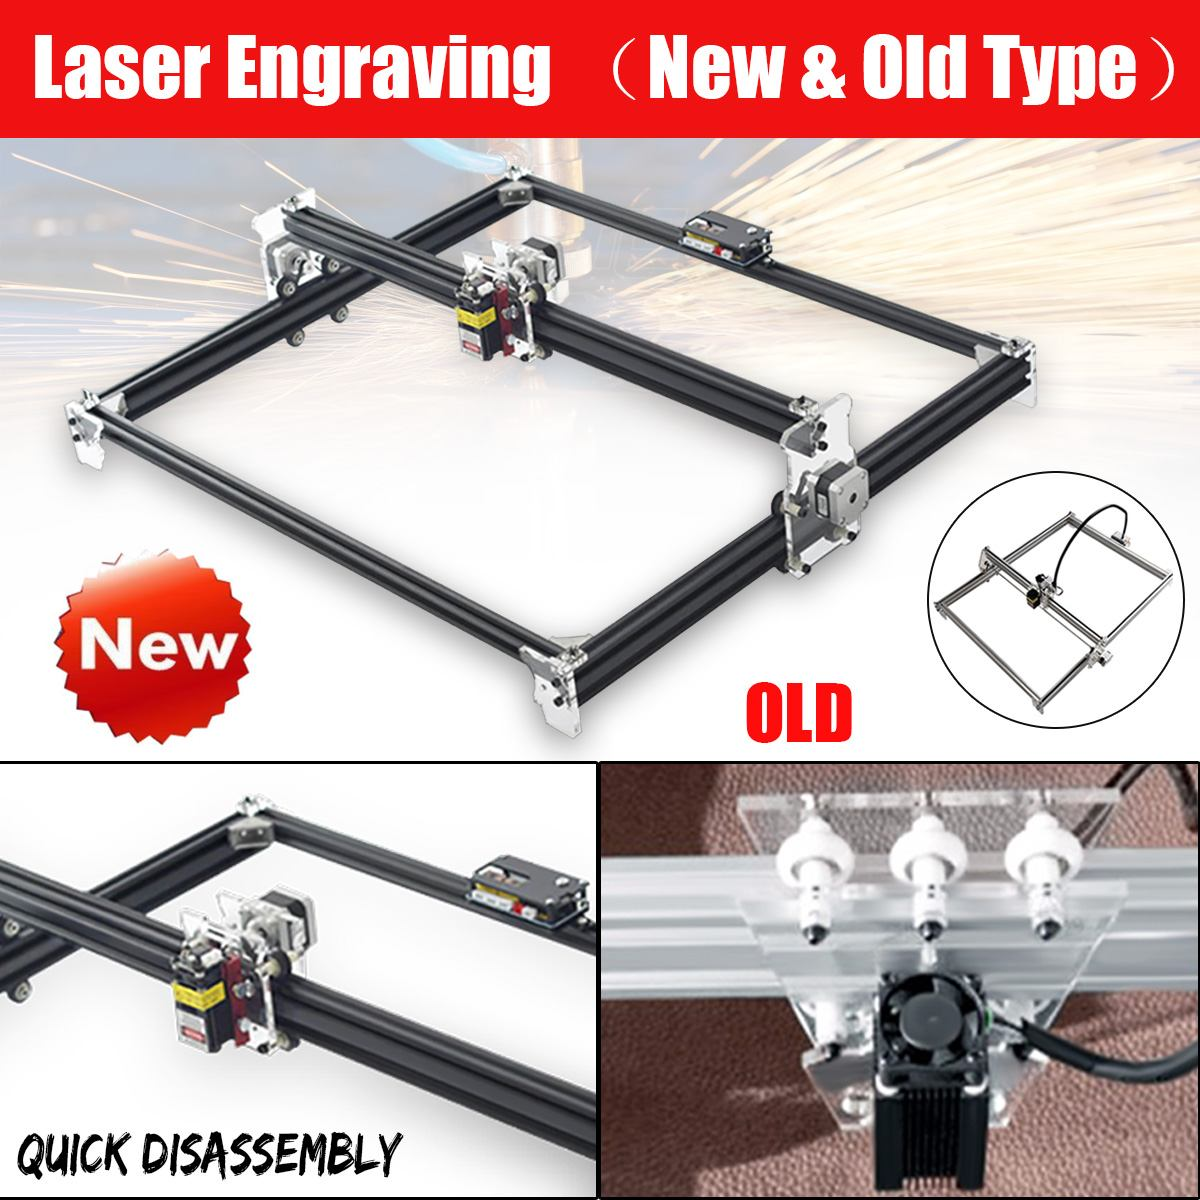 2-Axis DVP 6550 Laser Engraving Machine Wood Router Laser Cutter DIY Laser Engraver Machine CNC Router Best Advanced Toys